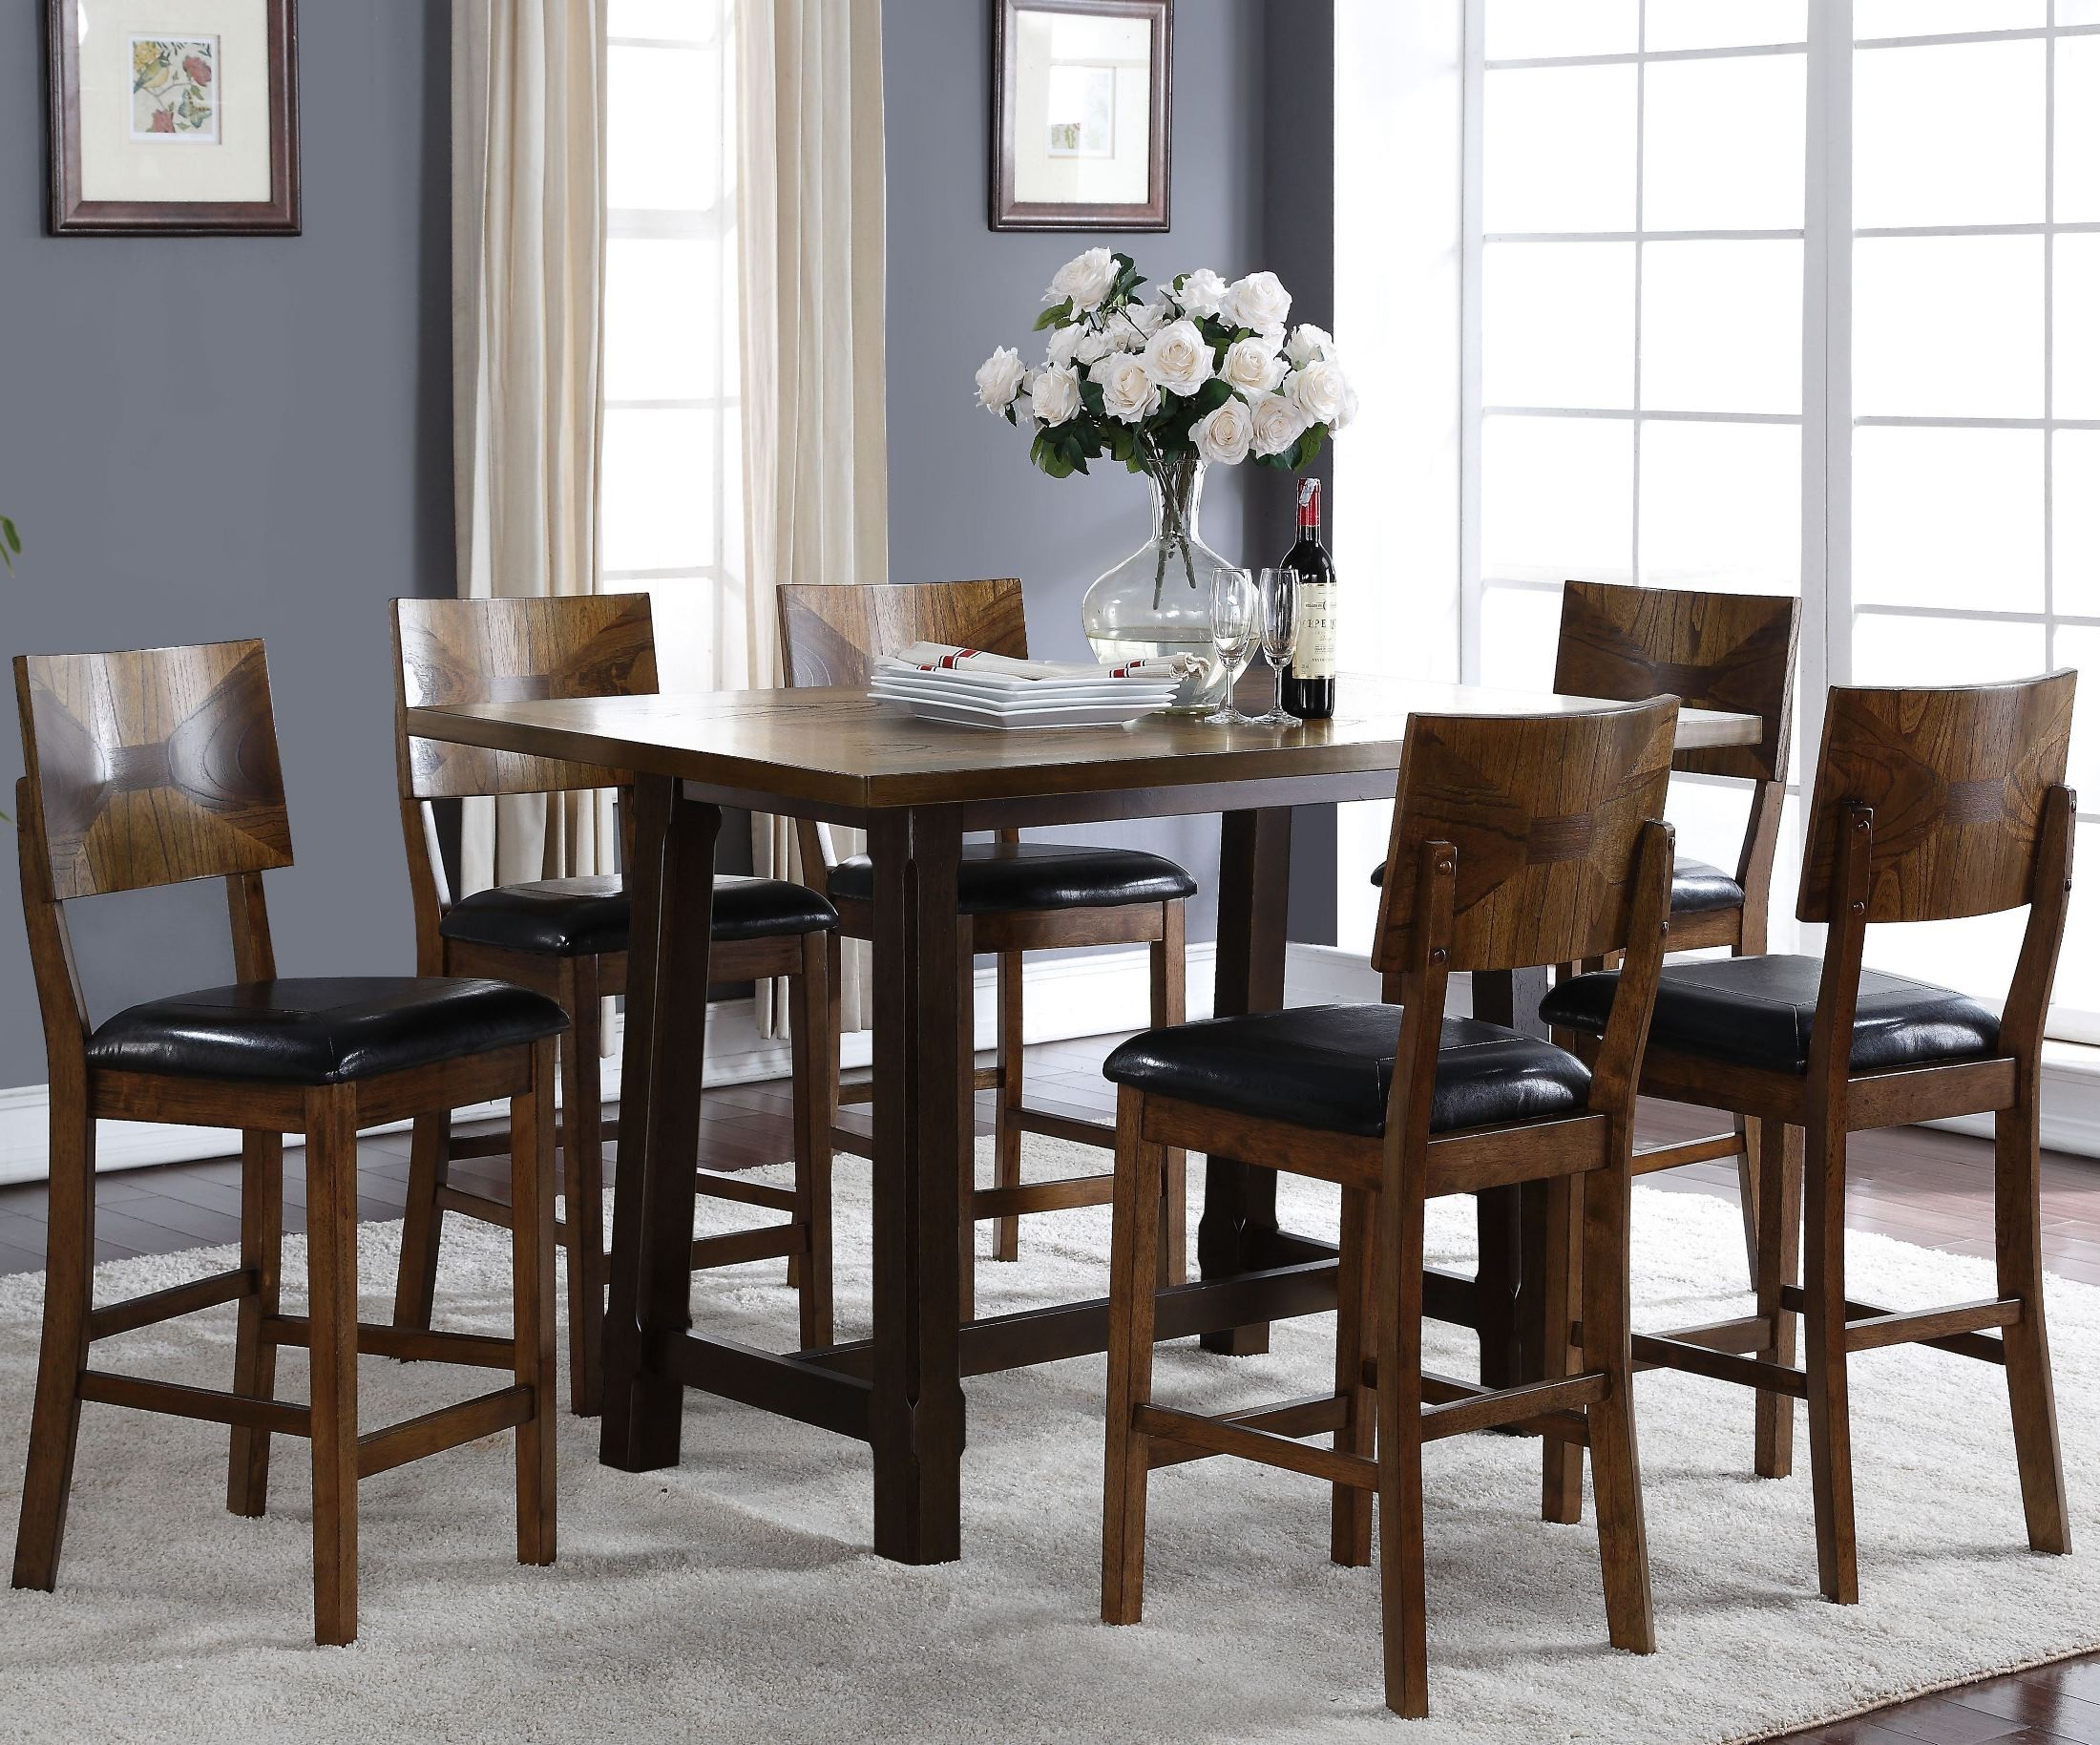 Gillian two tone counter height dining room set from new for 2 tone dining room sets